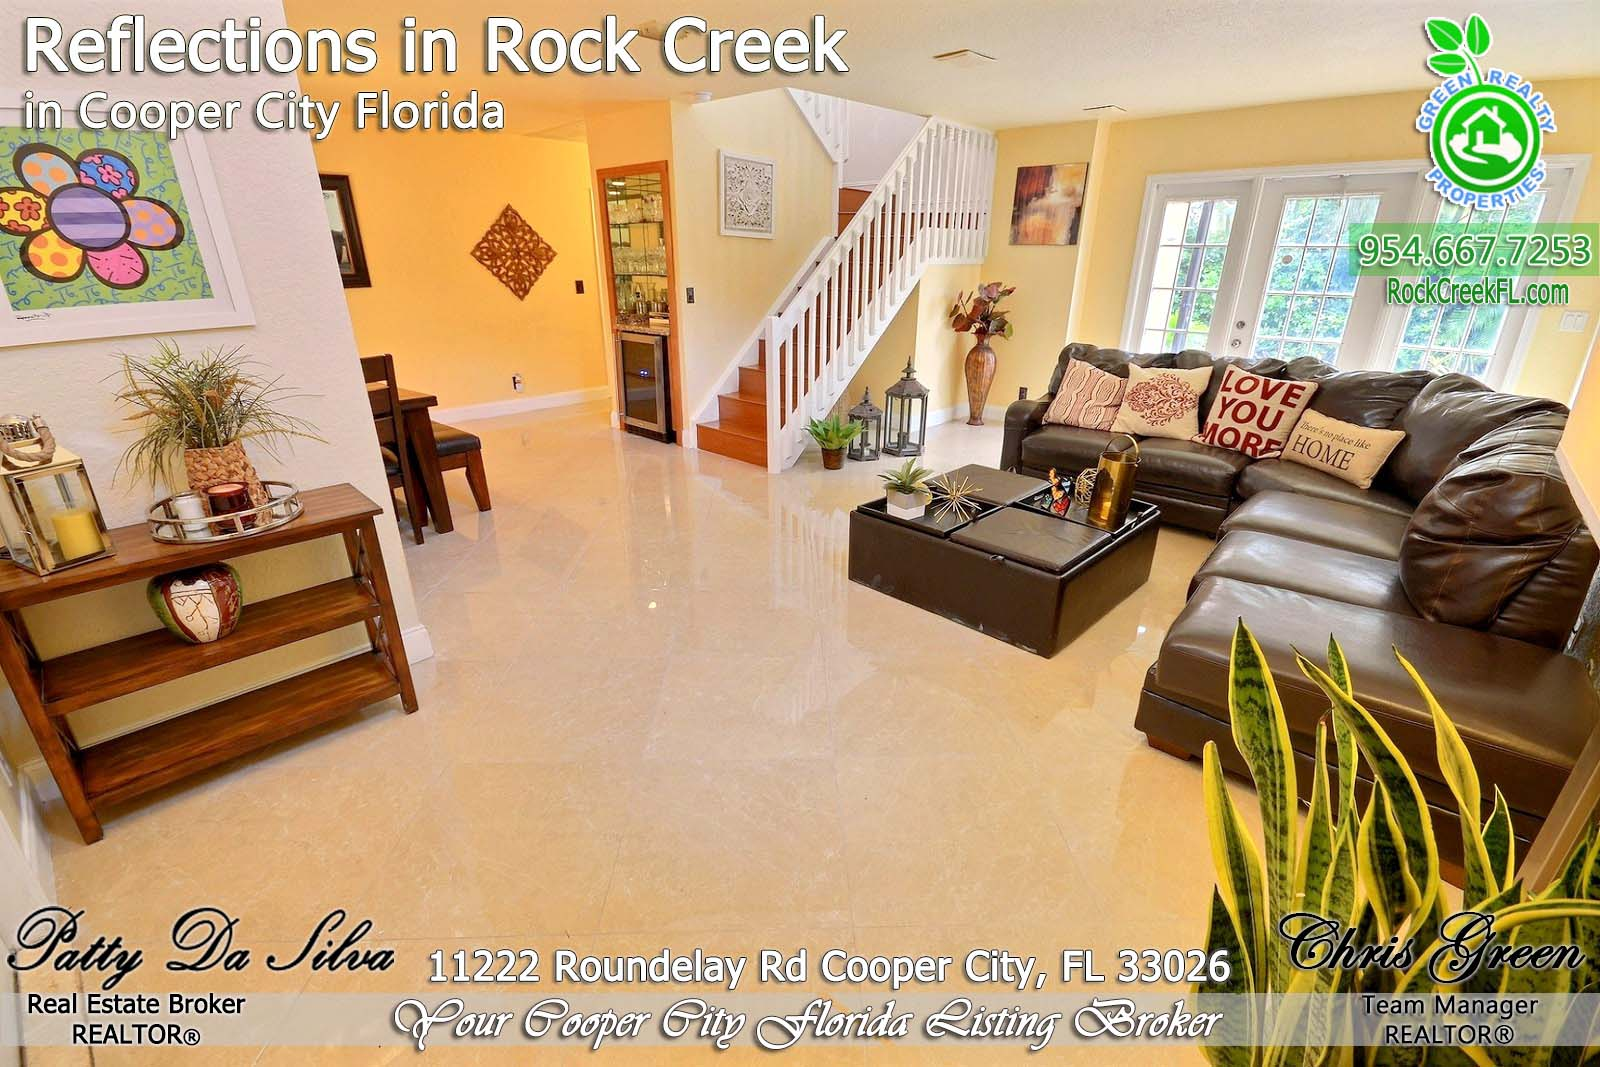 Patty Da Silva SELLS Rock Creek Homes